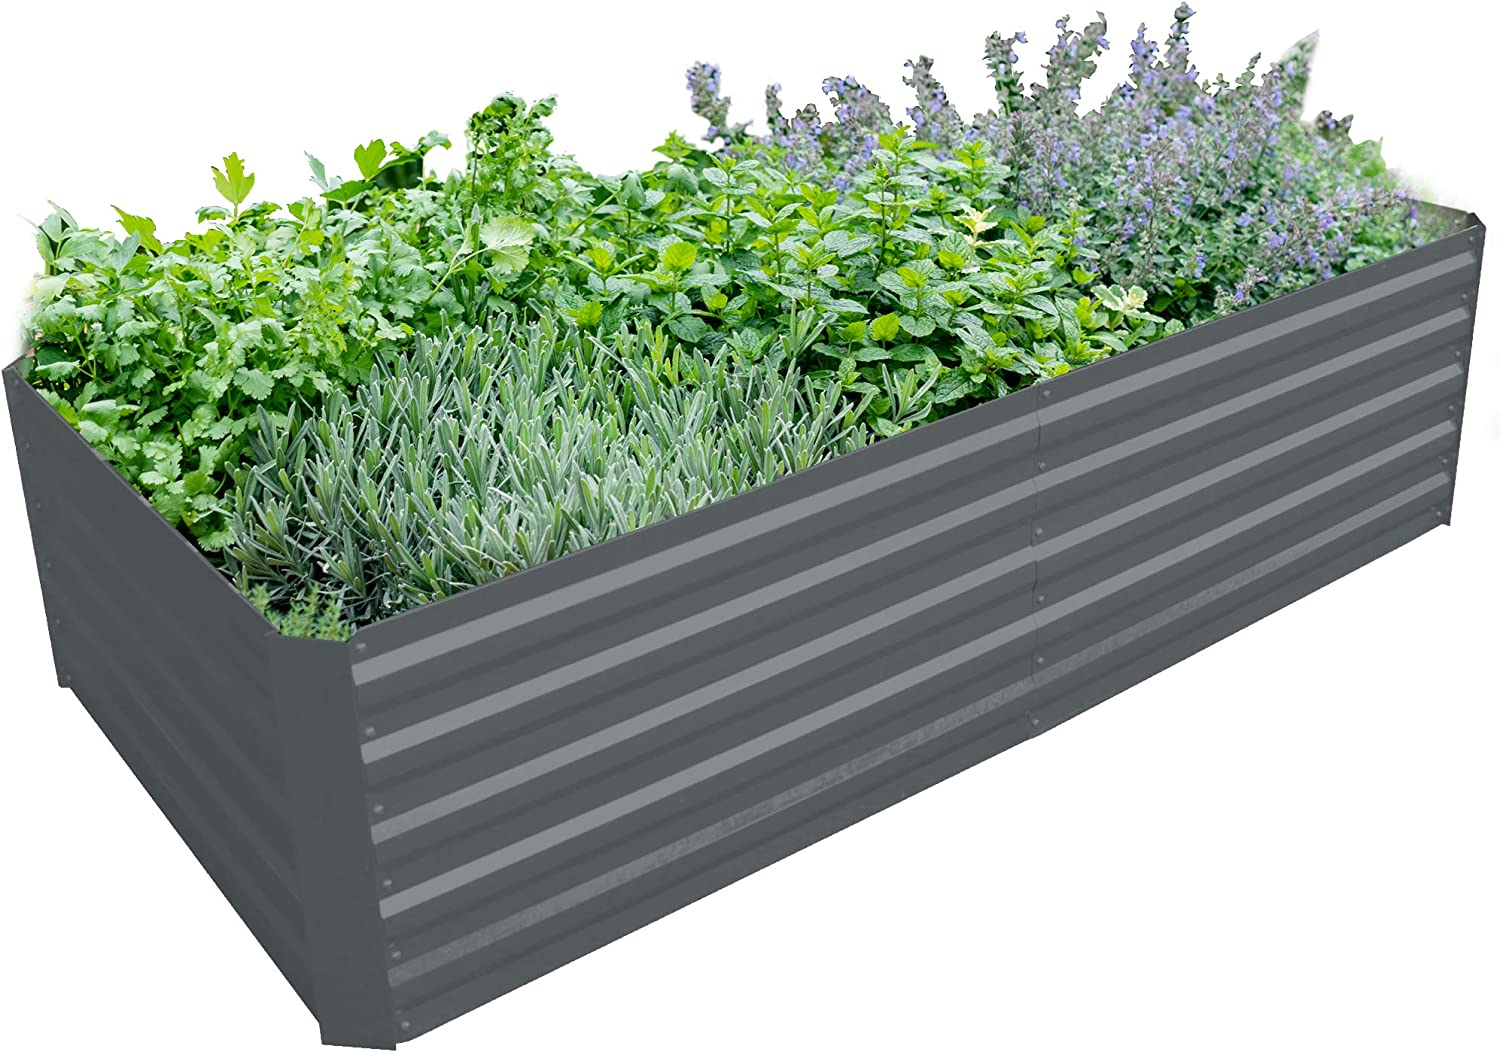 BLUEBERRY HILL Galvanized Steel Raised Garden Bed Extra Height Large Steel Planter Box for Vegetables, Herbs, Flowers. 80x40x19.7 Inch Powder-Coated (Cool Grey)